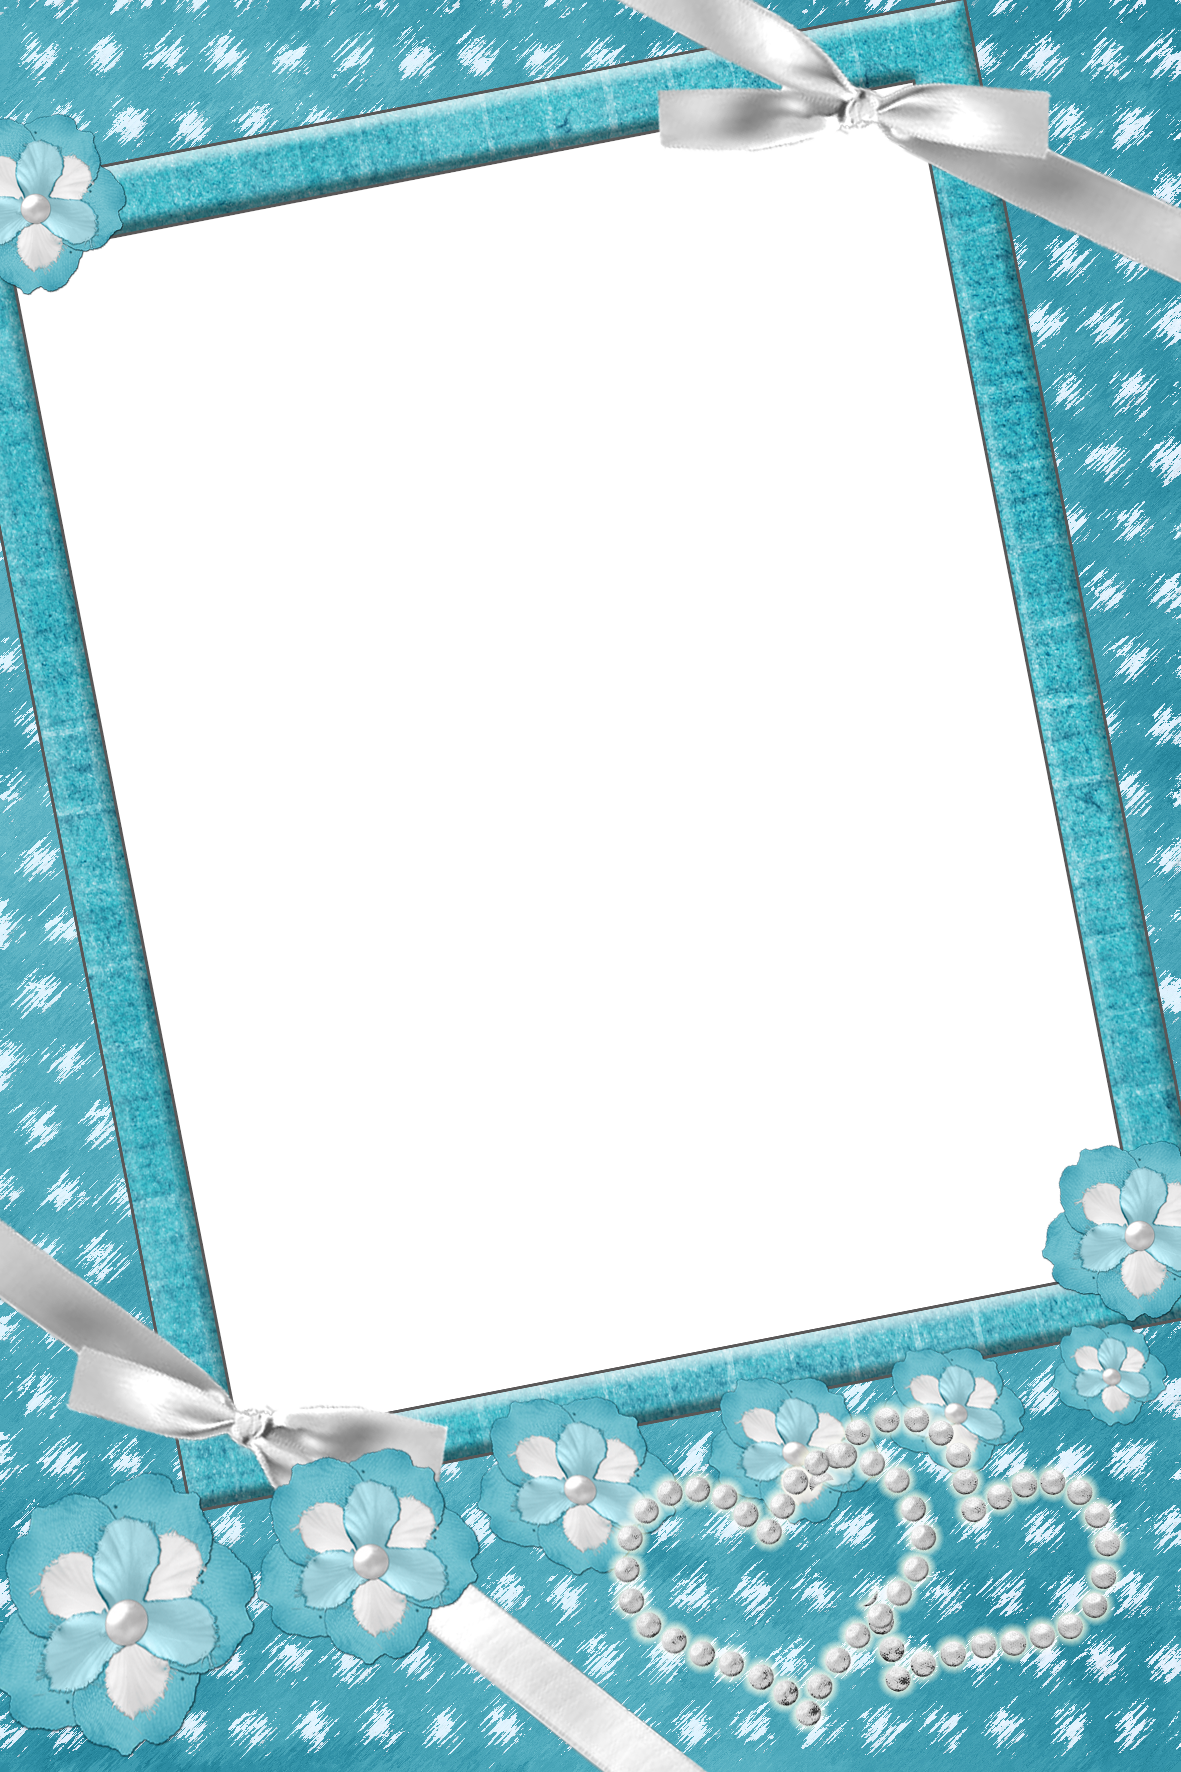 Transparent with flowers and. Frame clipart blue